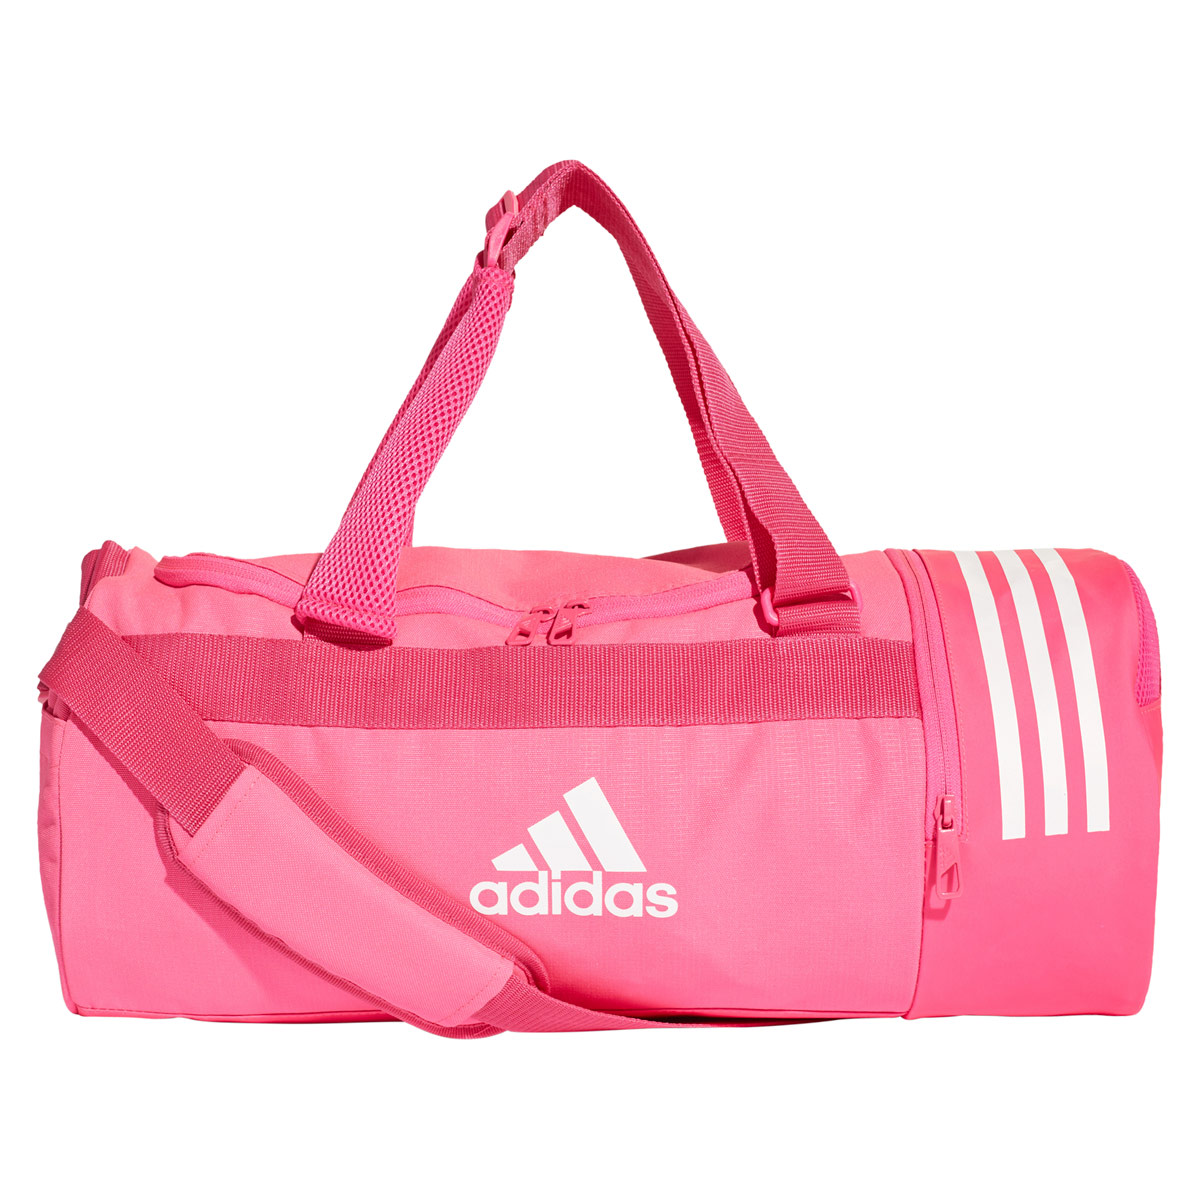 adidas Convertible 3-Stripes Duffel Bag Small - Sports bags - Pink ... 3f252ee22d389